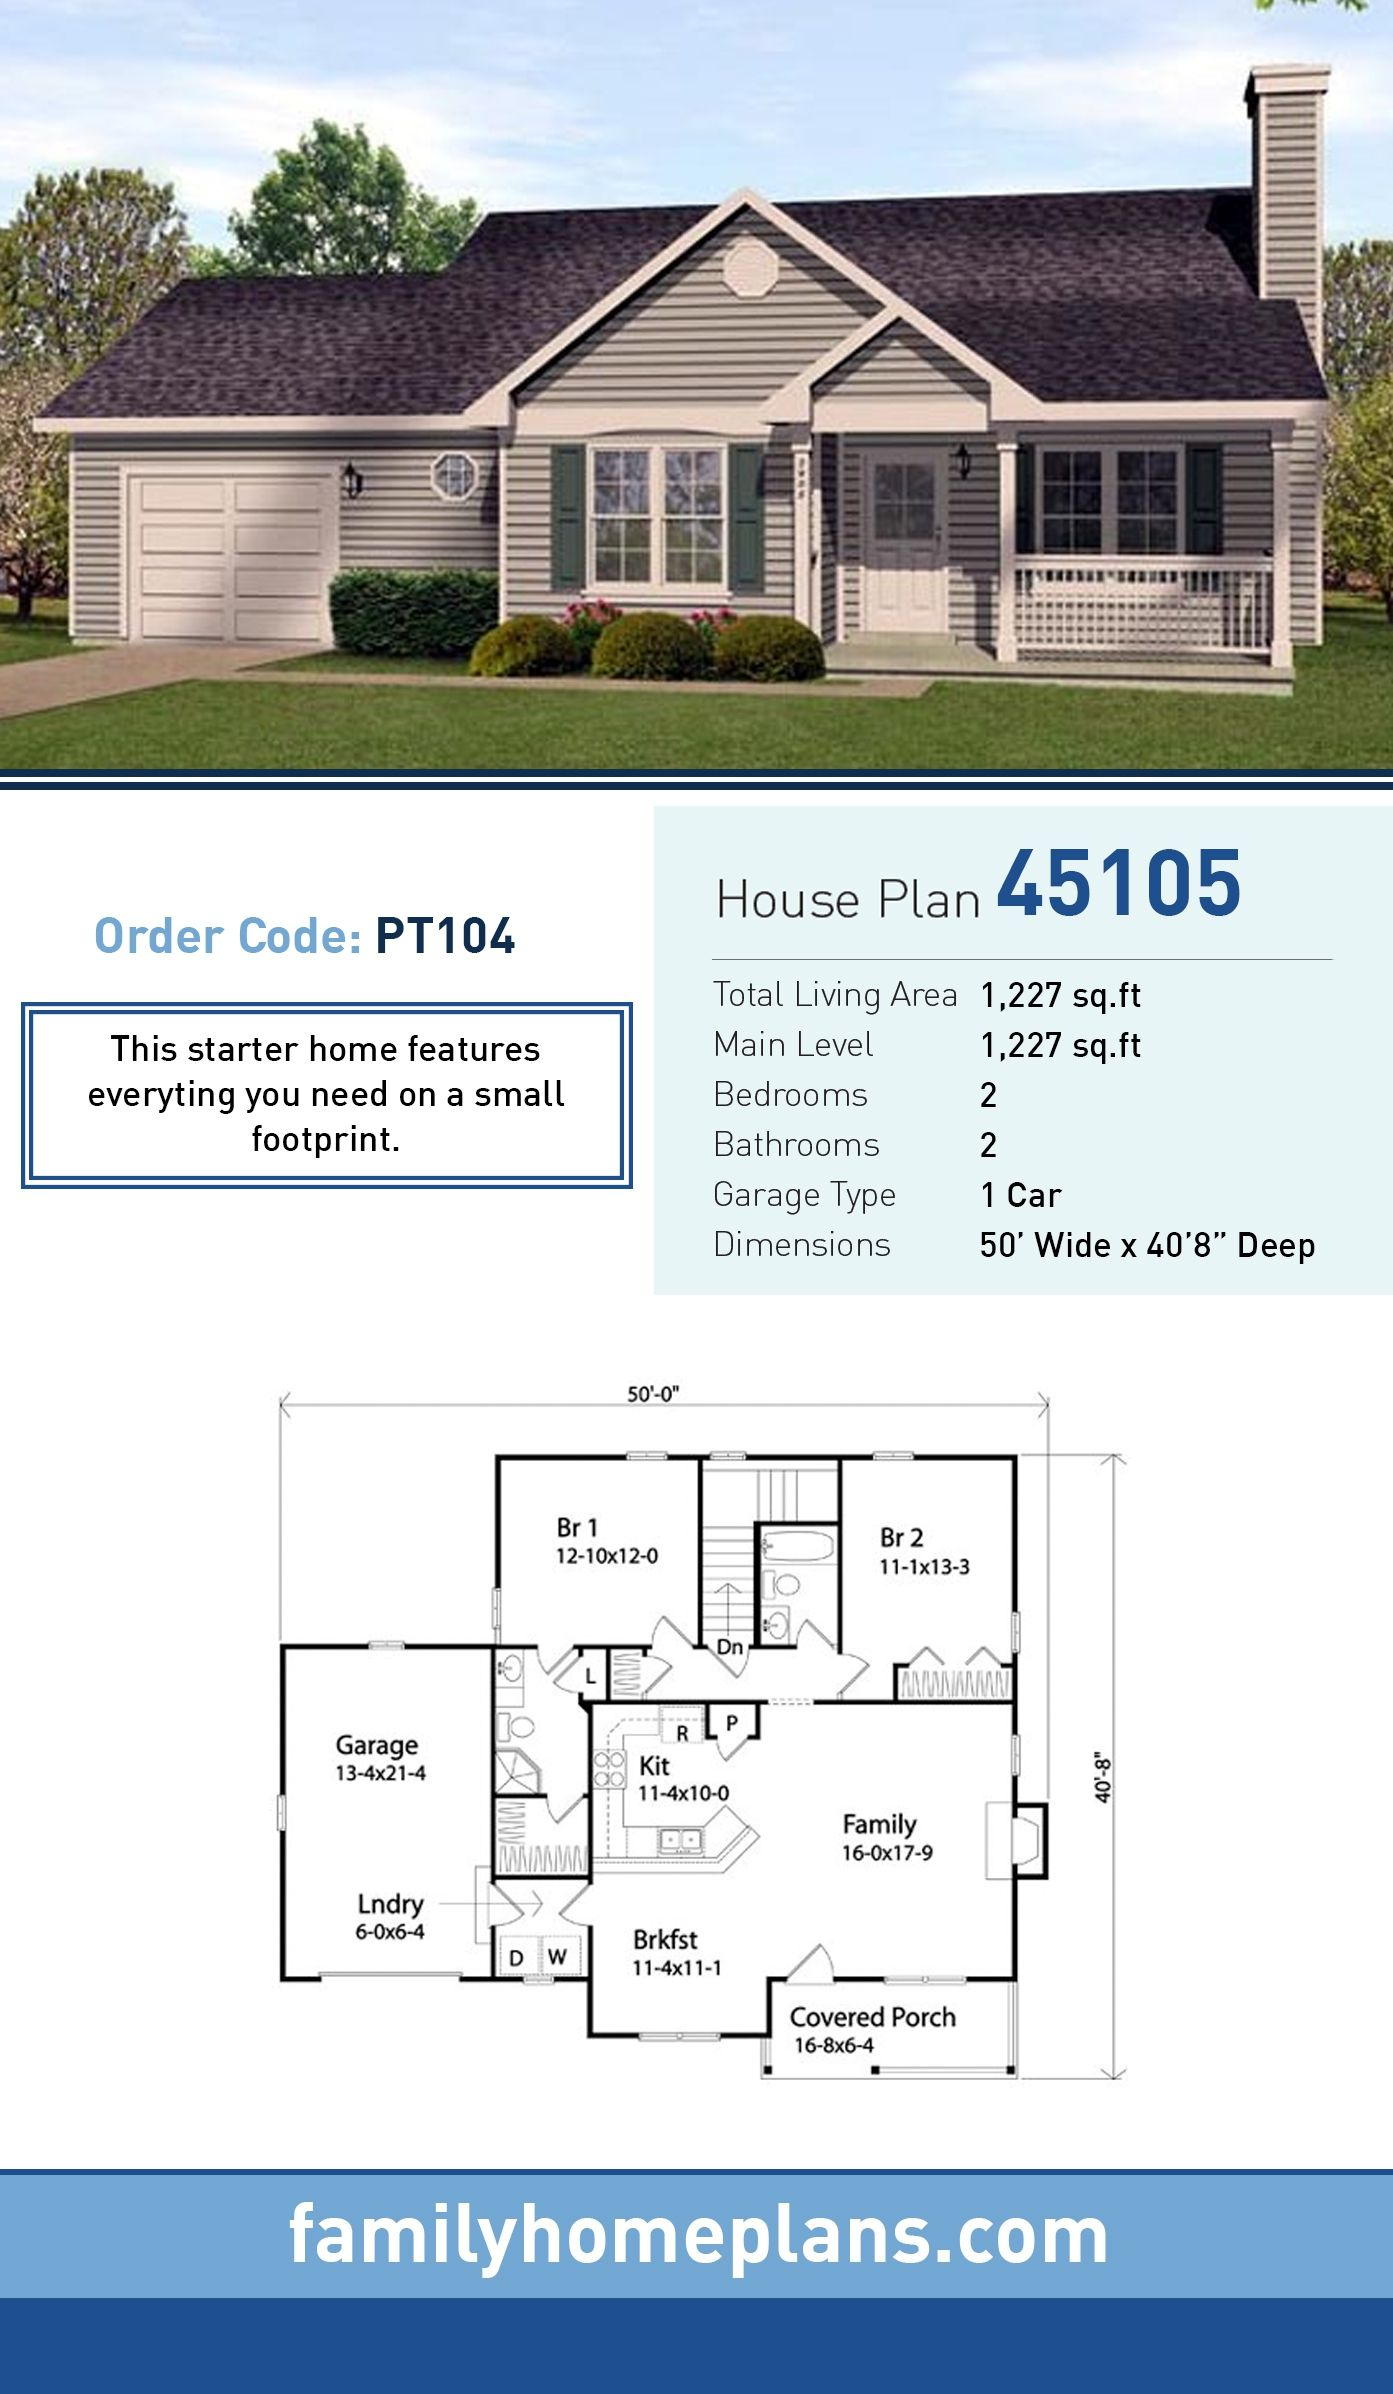 Traditional Style House Plan 45105 With 2 Bed 2 Bath 1 Car Garage Starter Home Plans Traditional House Plans Ranch Style House Plans